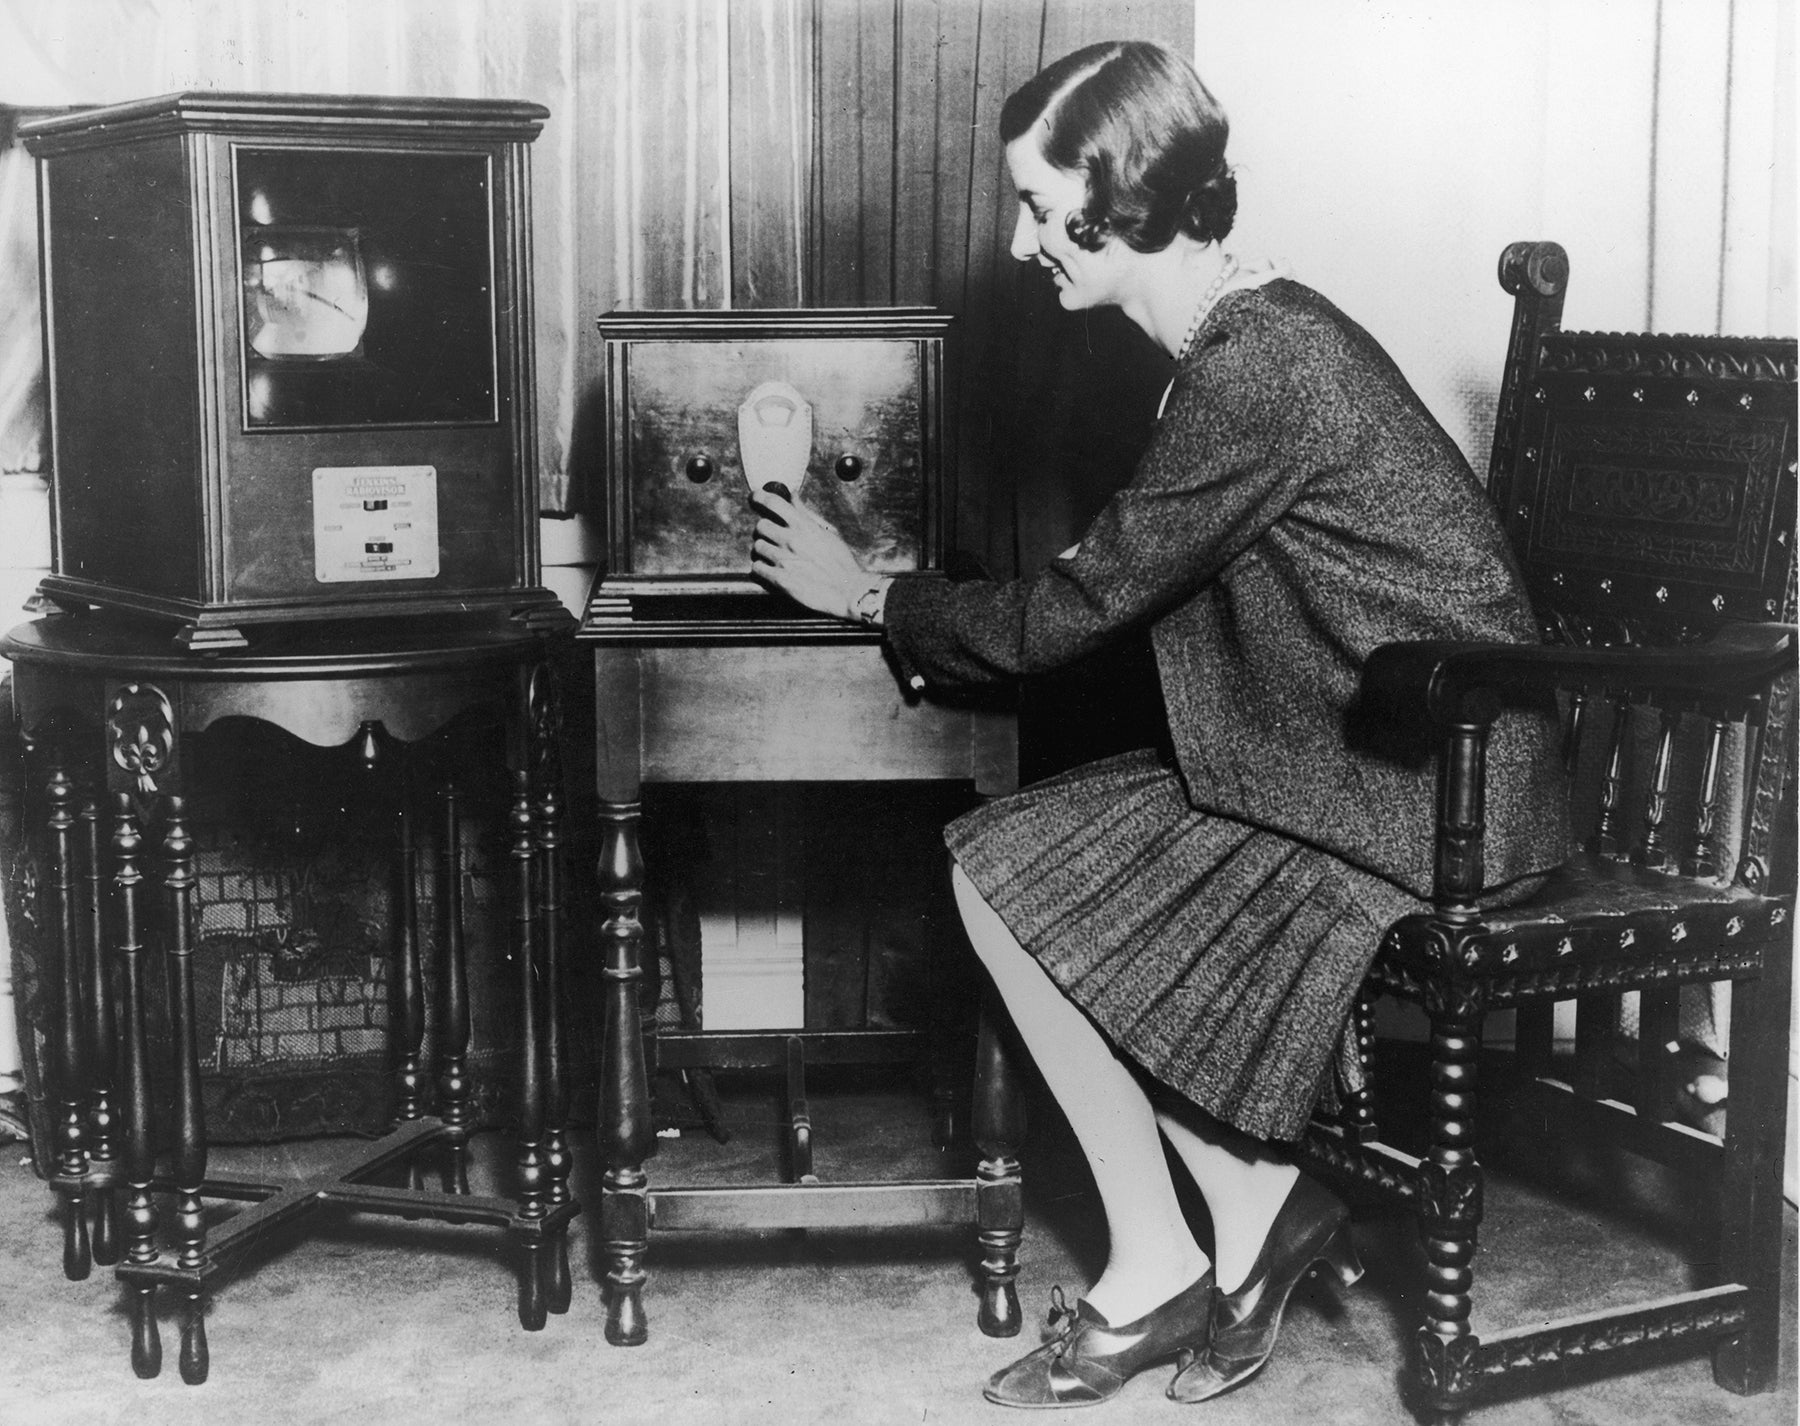 January 30, 1930: A woman smiles while turning the dial of an early television receiver, the Jenkins 'Model 200 Radiovision'.